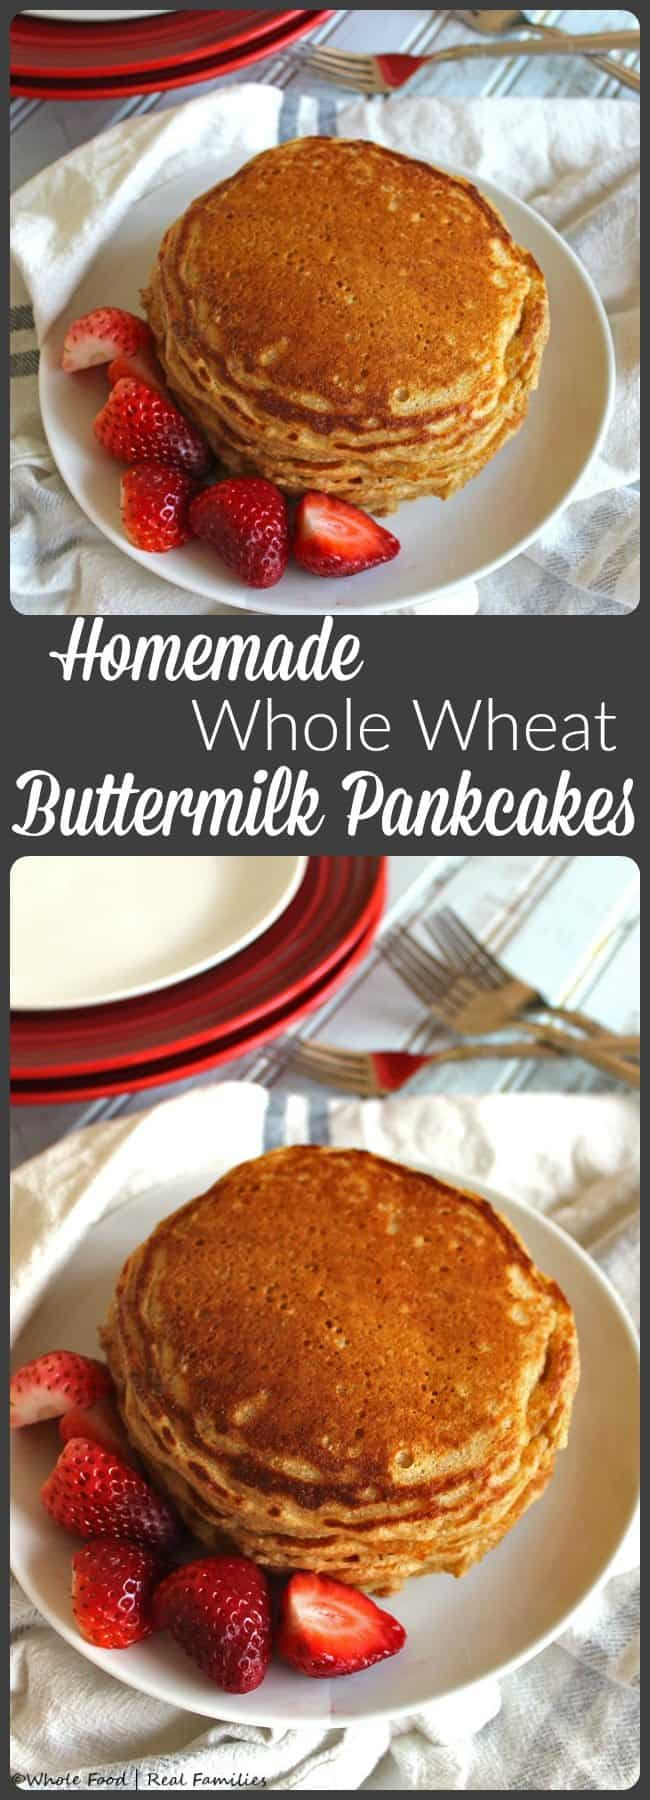 Are you a pancake lover, but feel regret over eating them? These whole wheat buttermilk pancakes are the perfect healthy breakfast idea.